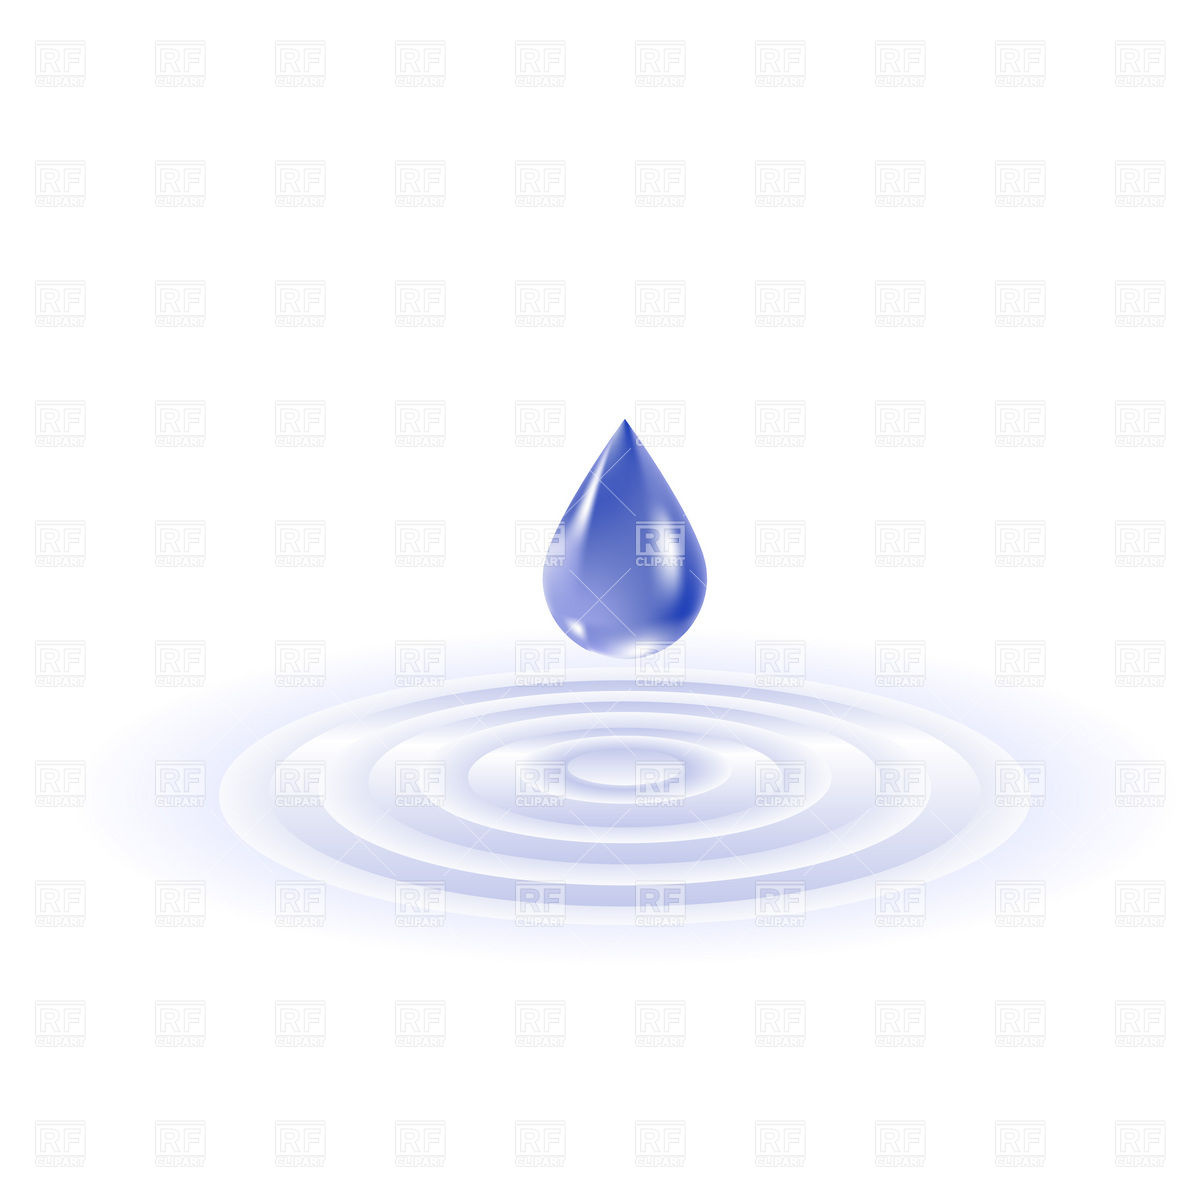 Falling water drop and ripples Vector Image #8537.